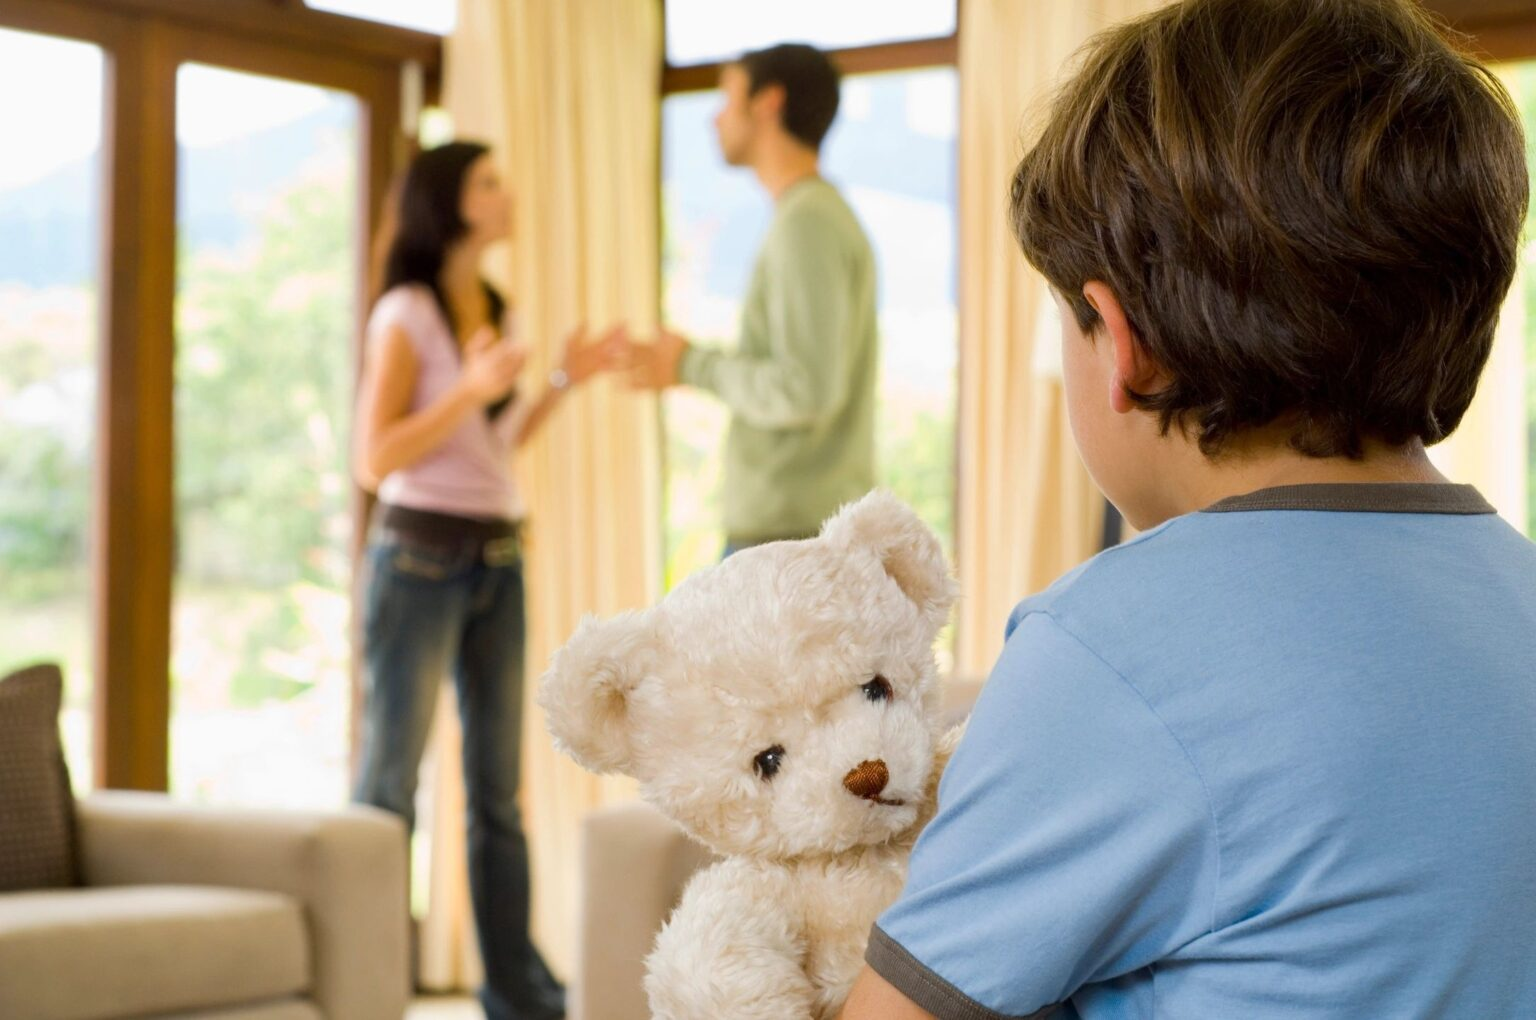 Child watching parents fight